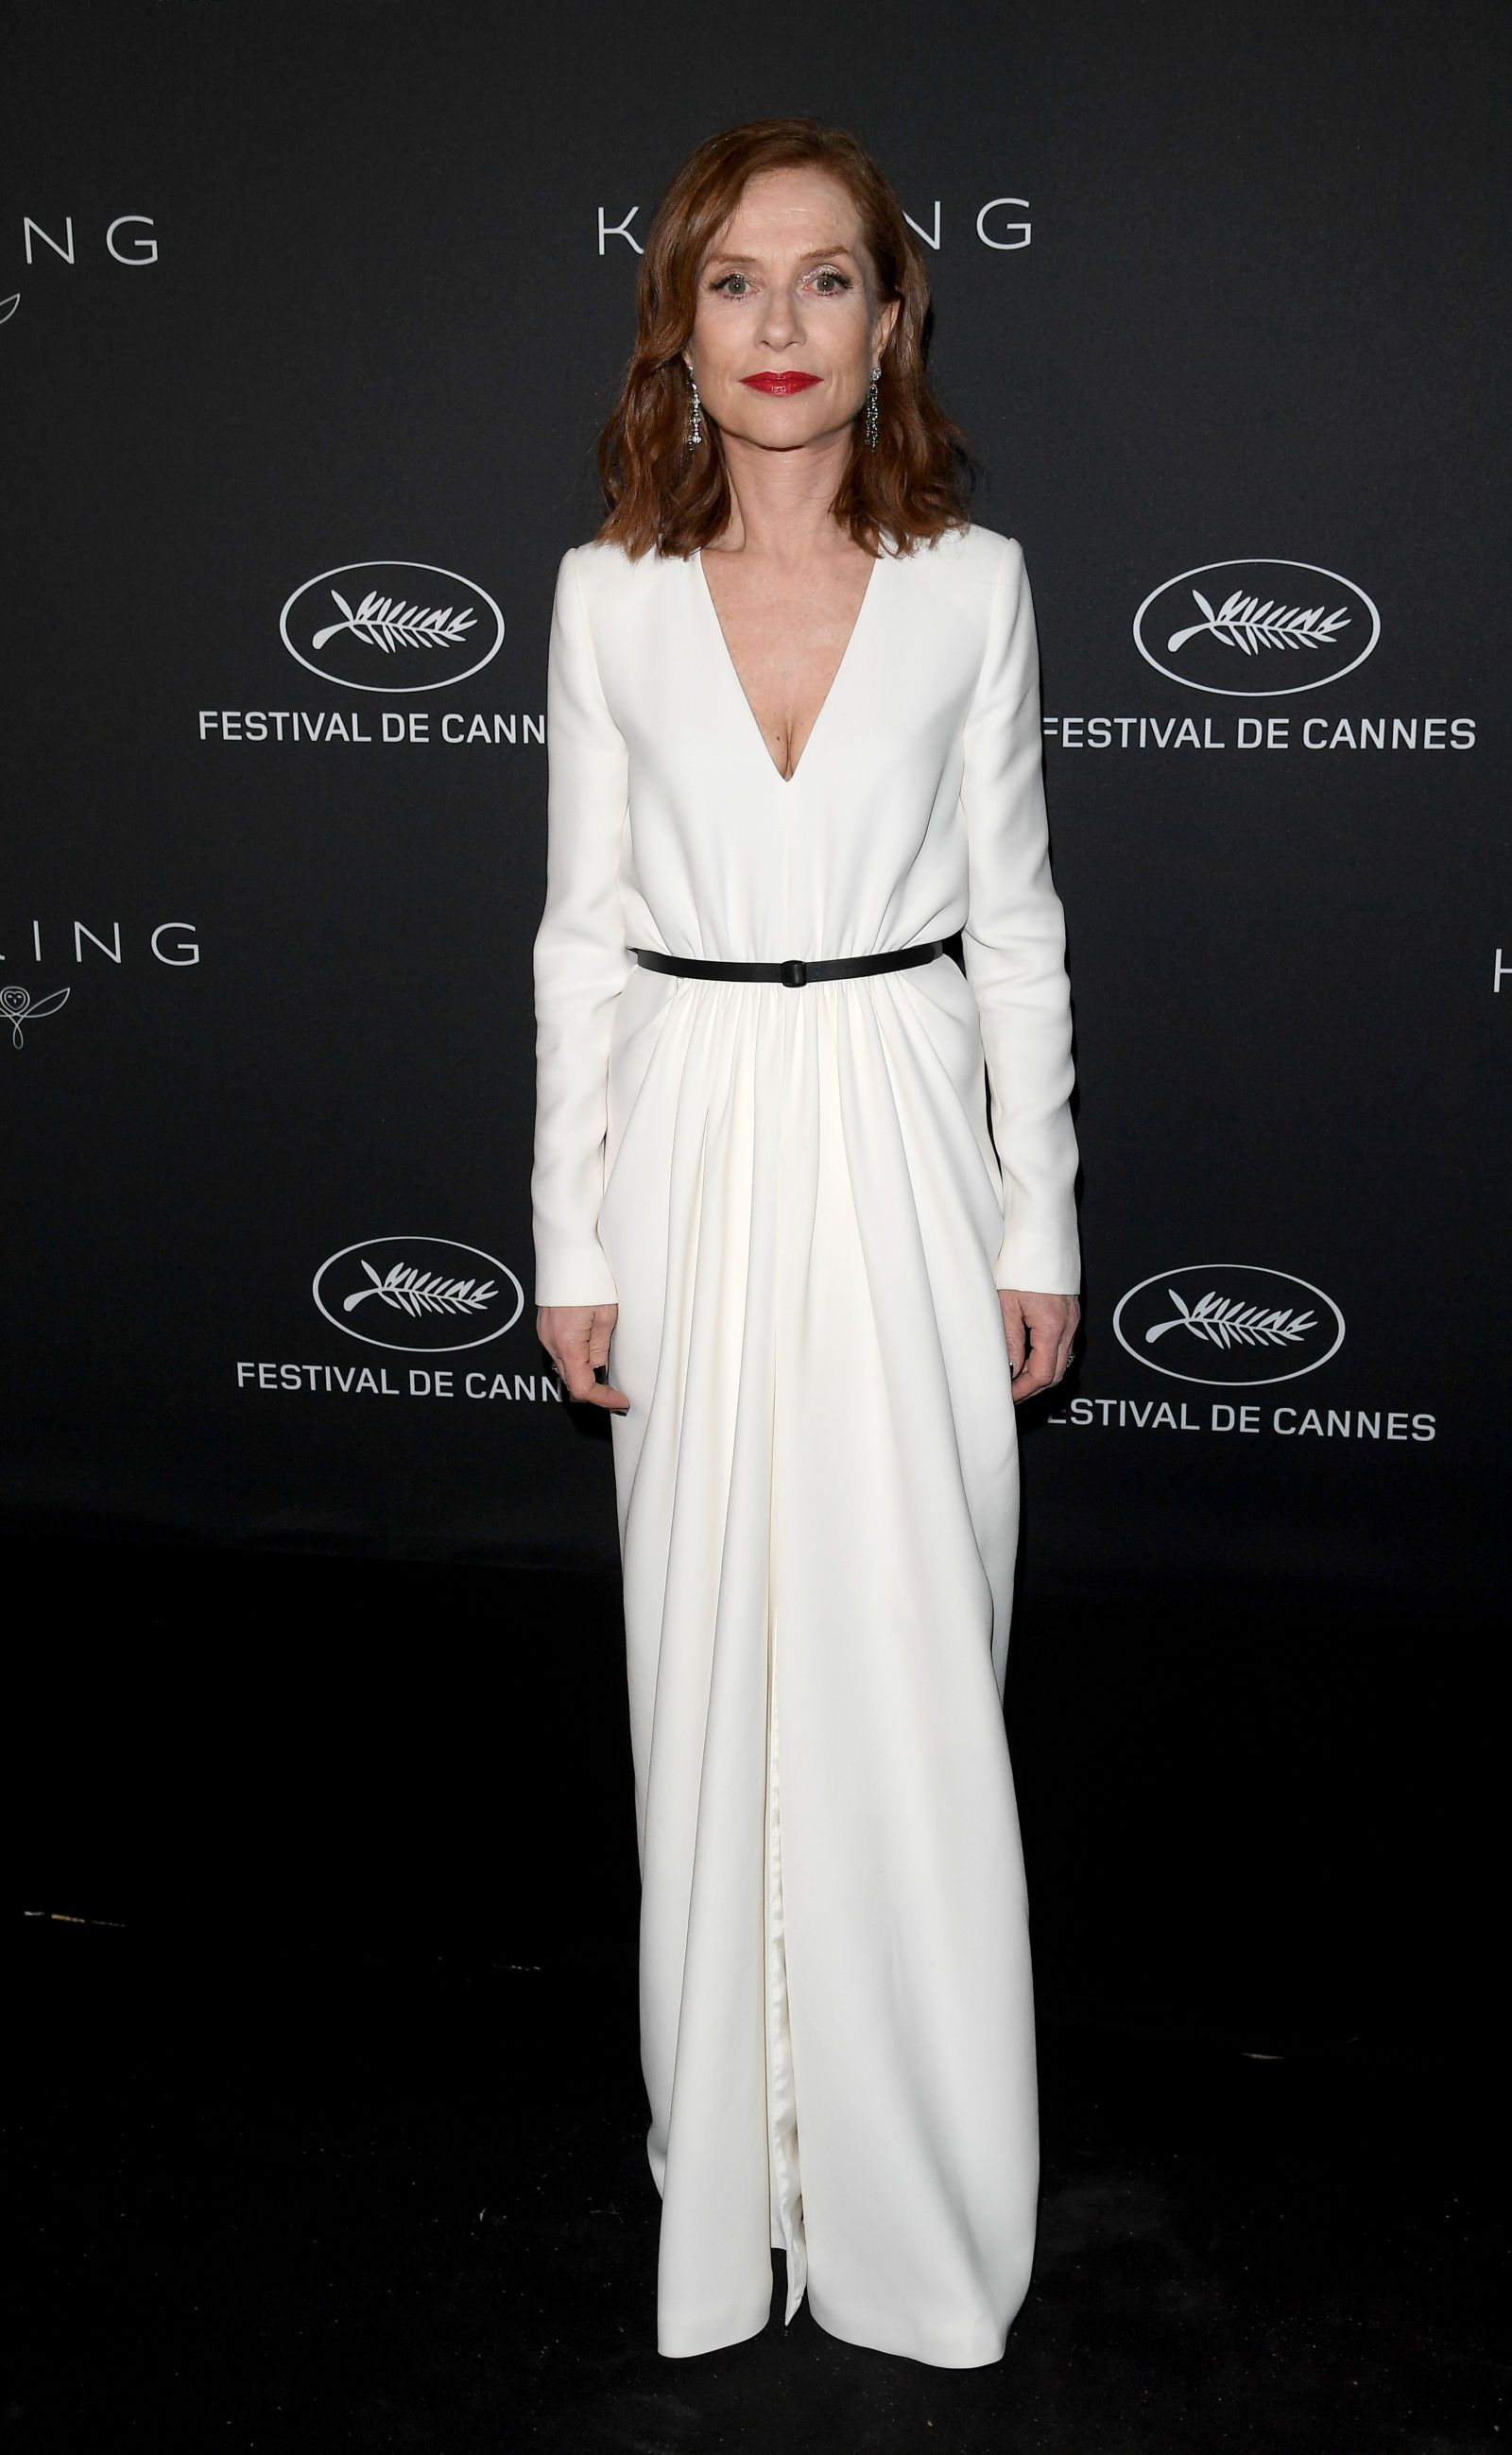 Isabelle Huppert. The Best Dressed Celebrities at Cannes Film Festival 2017